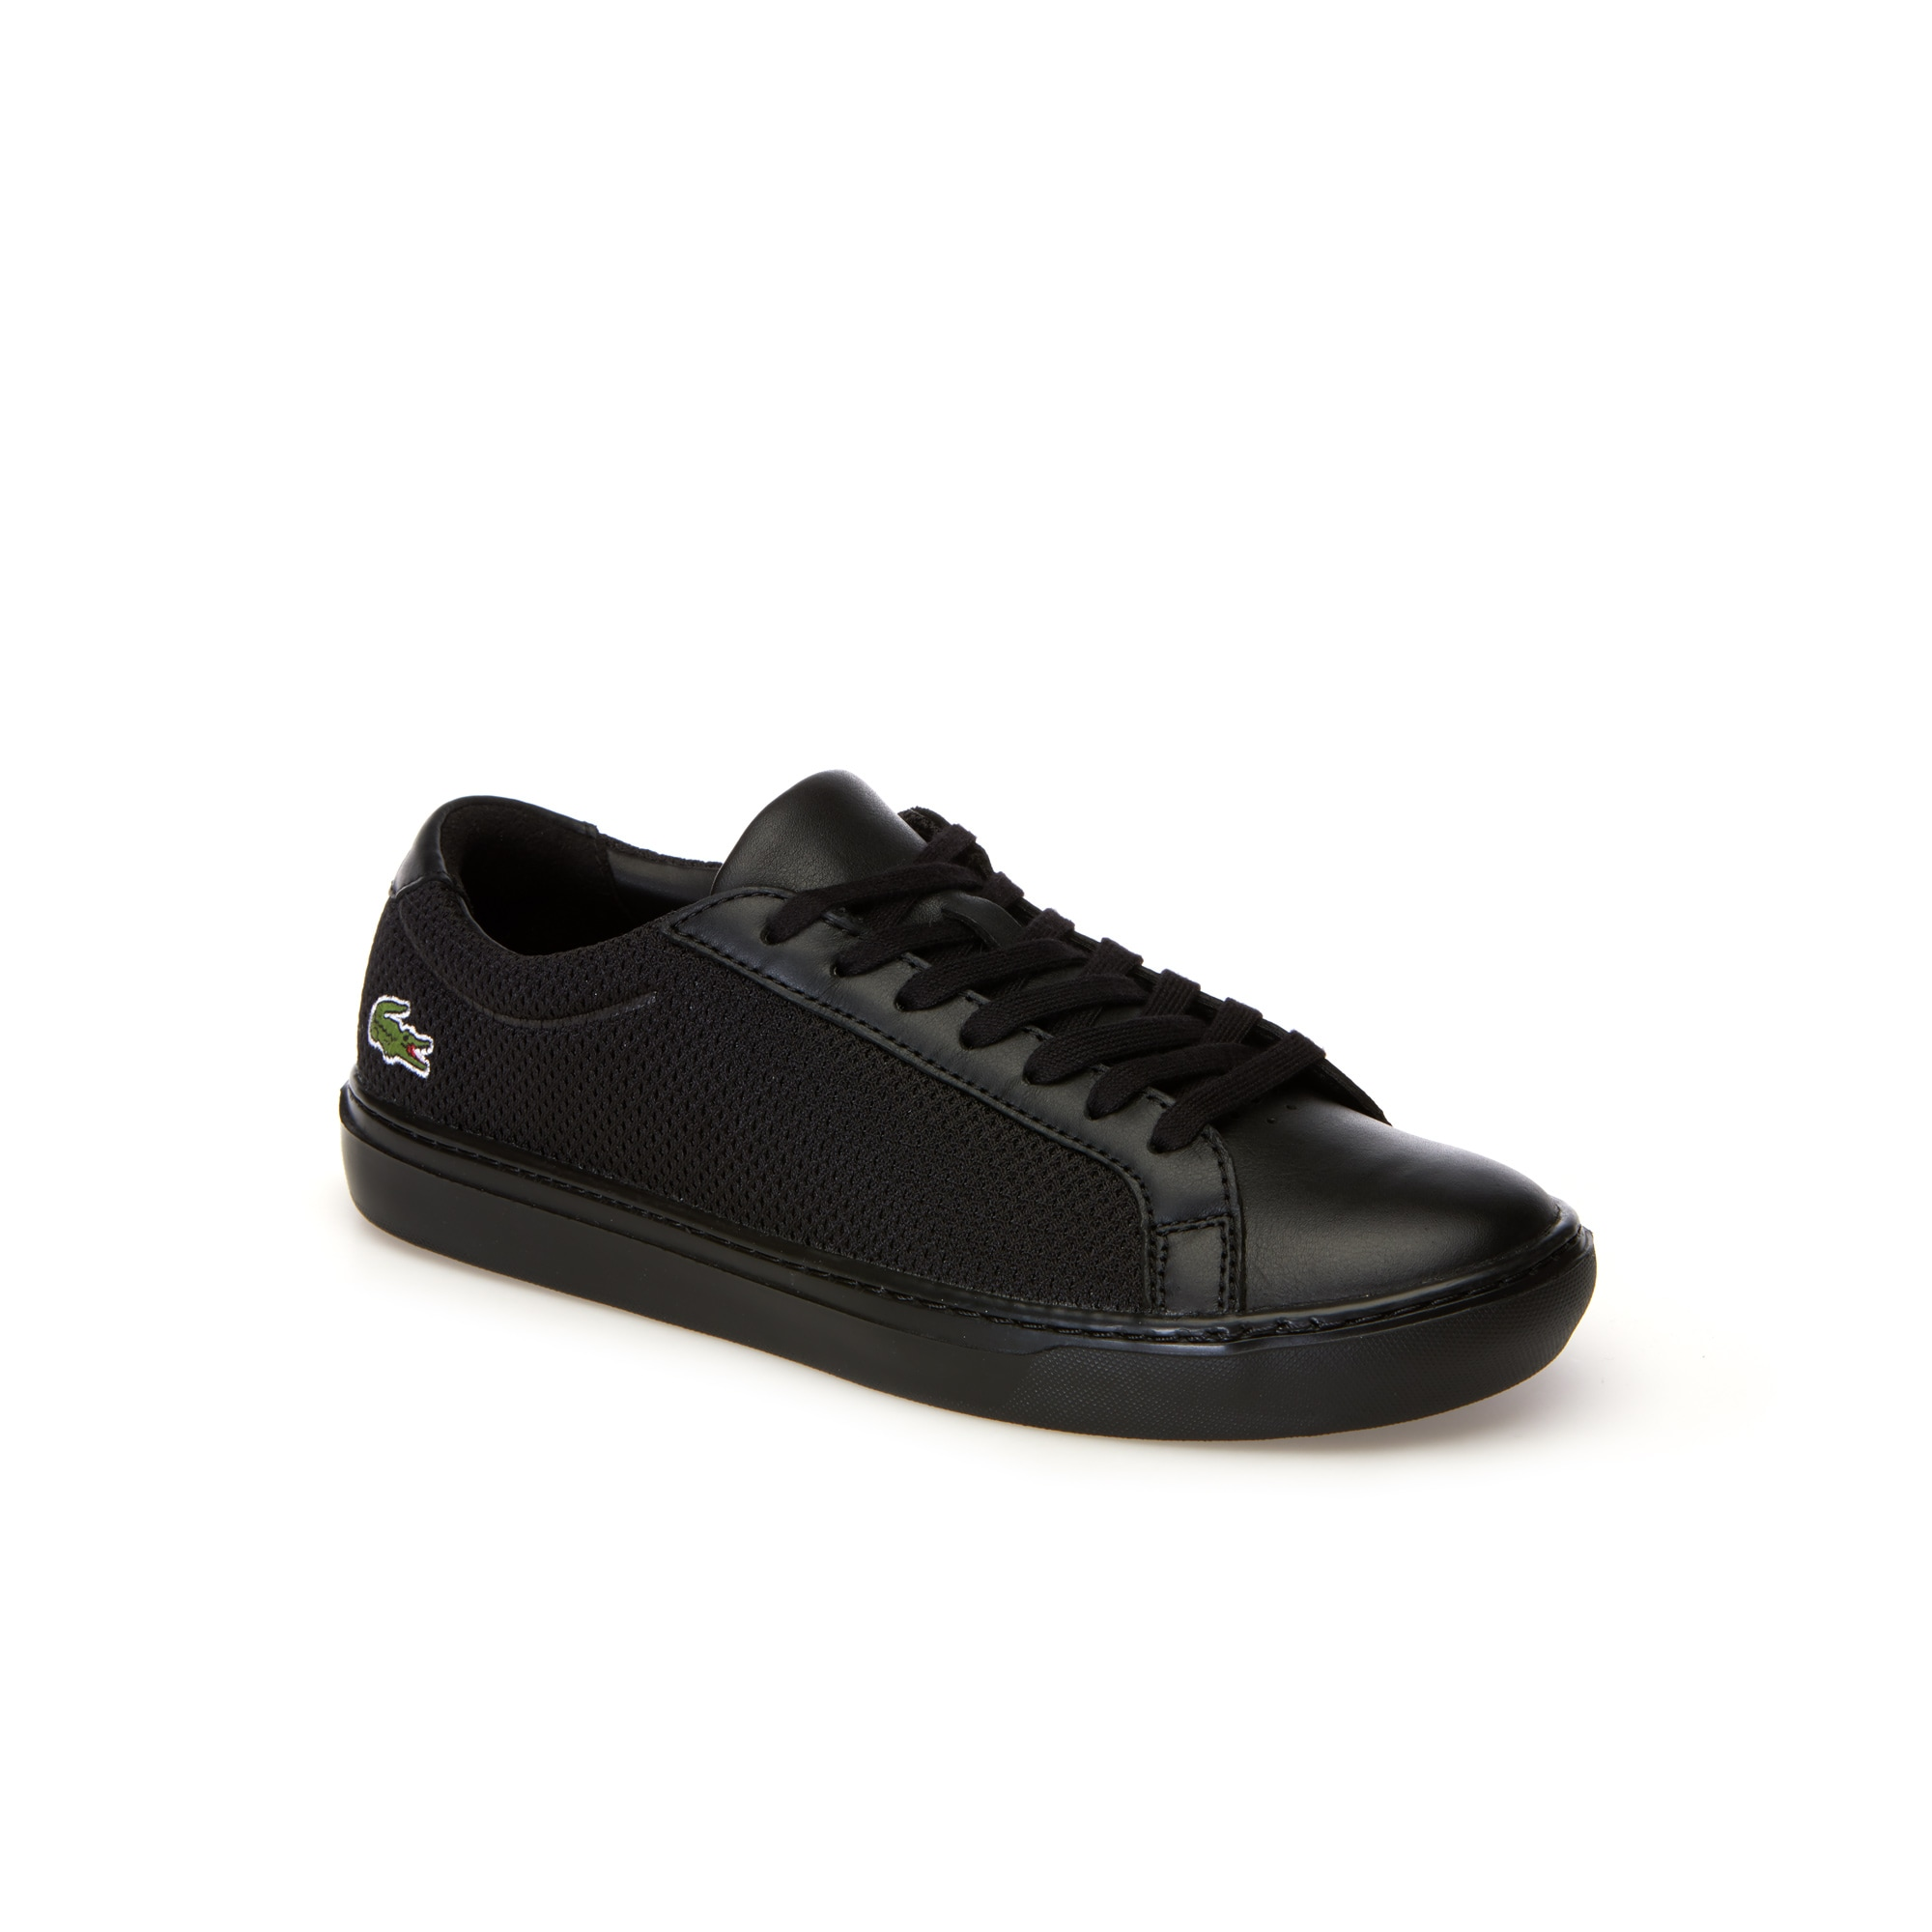 Light Lacoste L And Wt Textile Trainers 12 12 Men's Leather xqwtRSRF